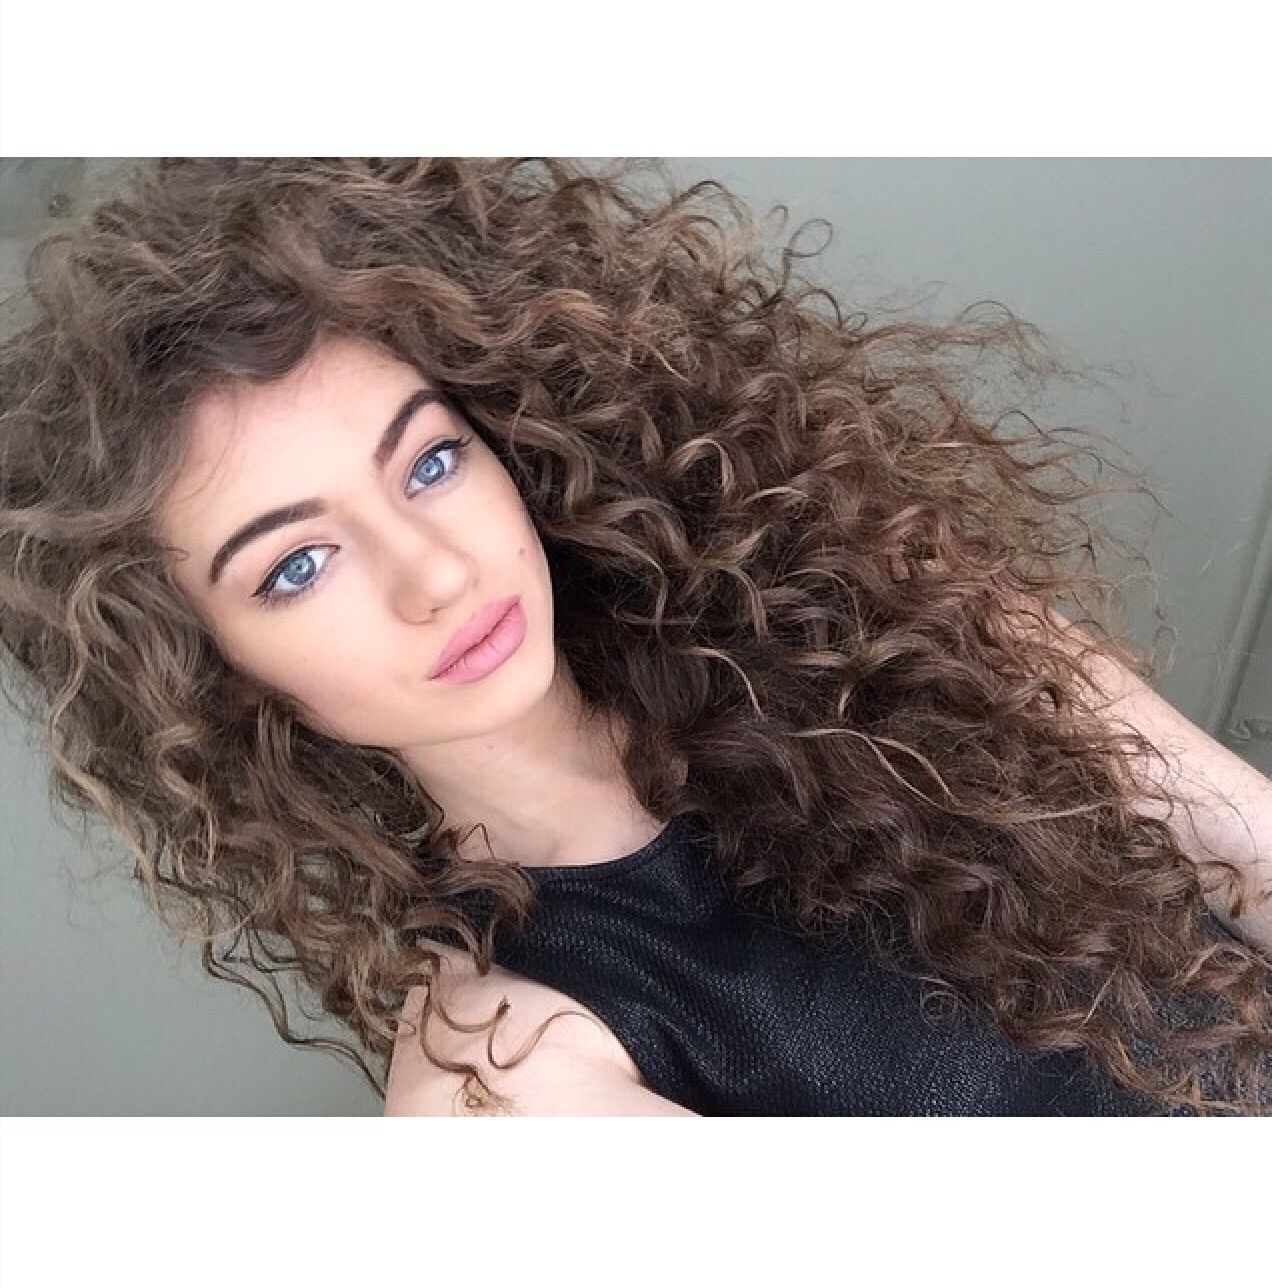 Straight hair perms pros and cons - Hair Goals